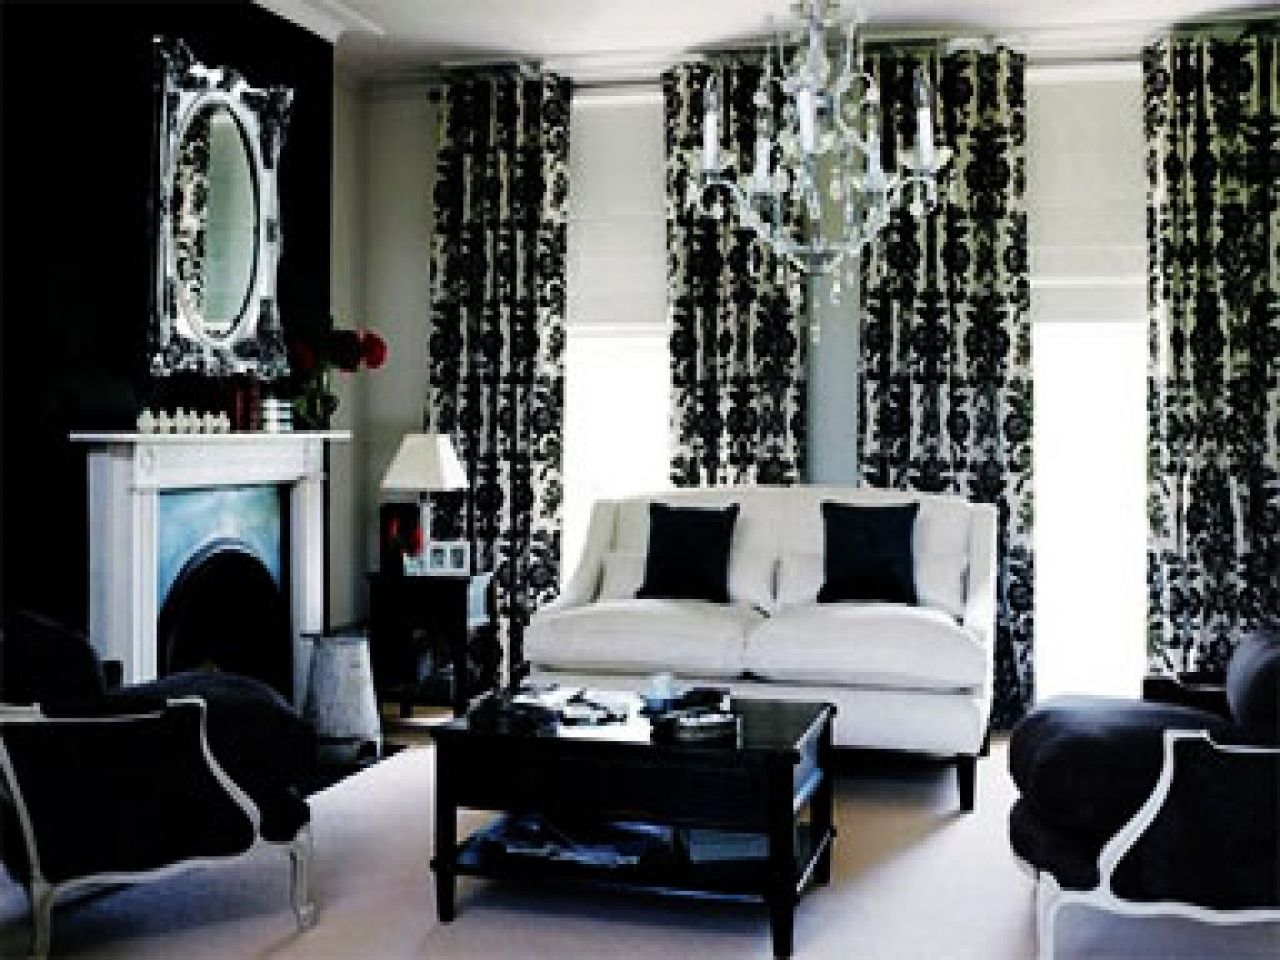 Diy Red Black And White Living Room Ideas Black And White Living Room Black And White Living Room Decor Black Living Room #red #black #white #living #room